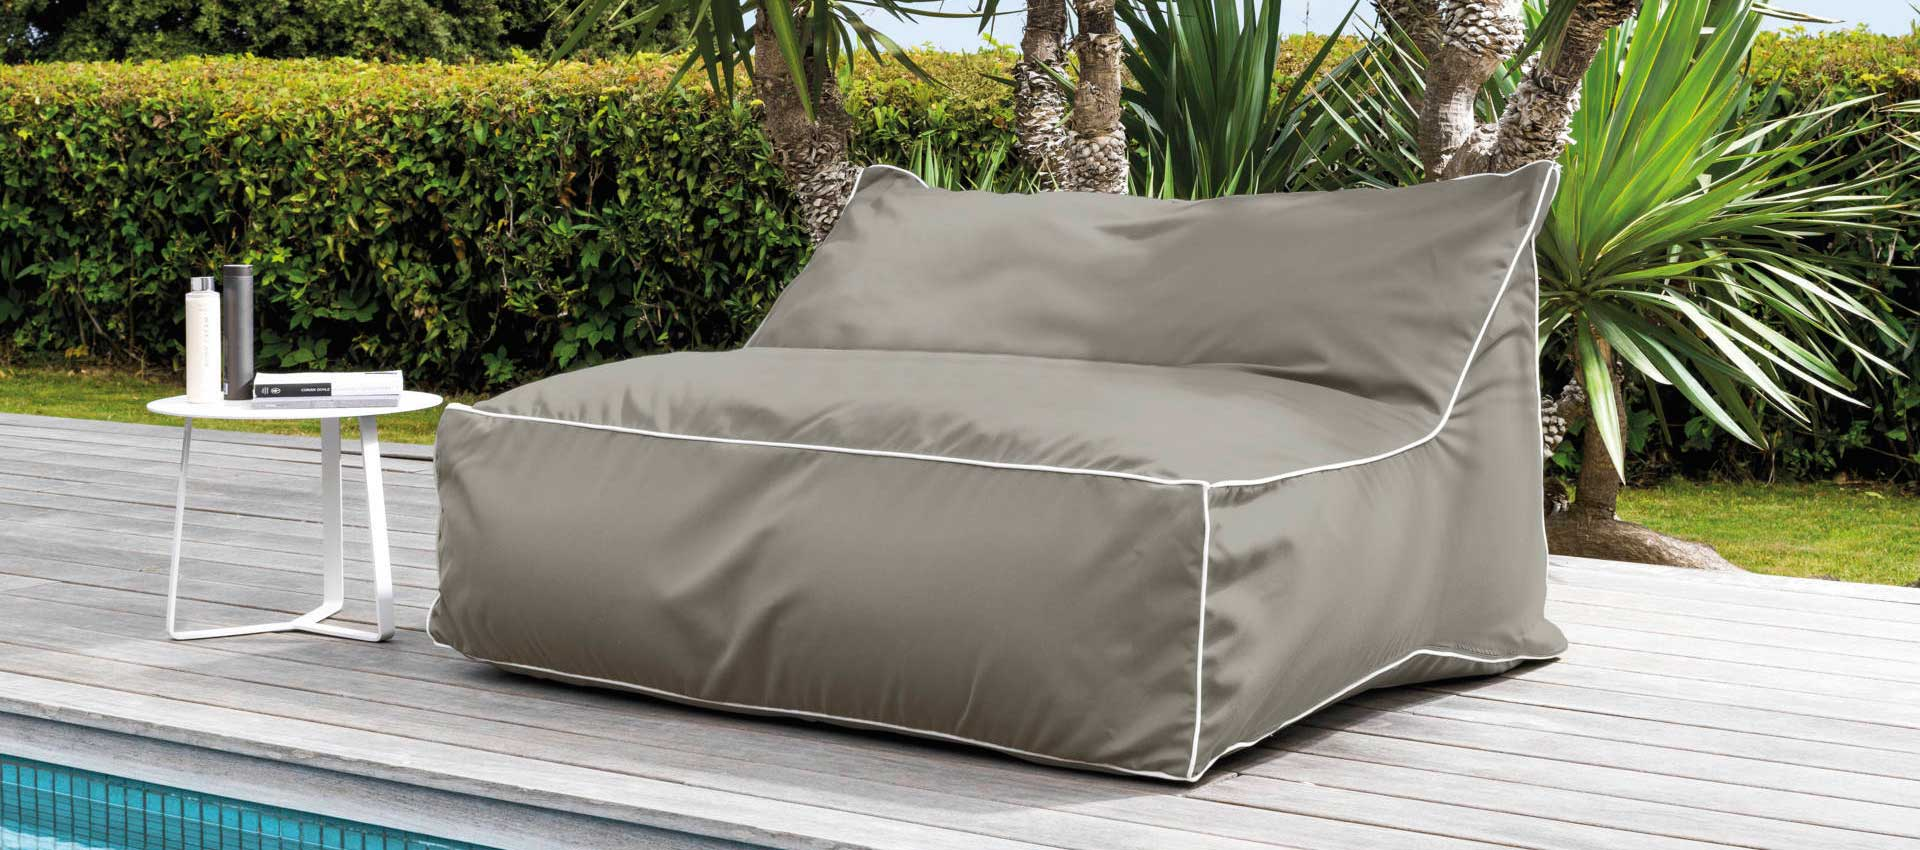 Bean Bags Outdoor Club Seats Poolside Lounge Outdoor